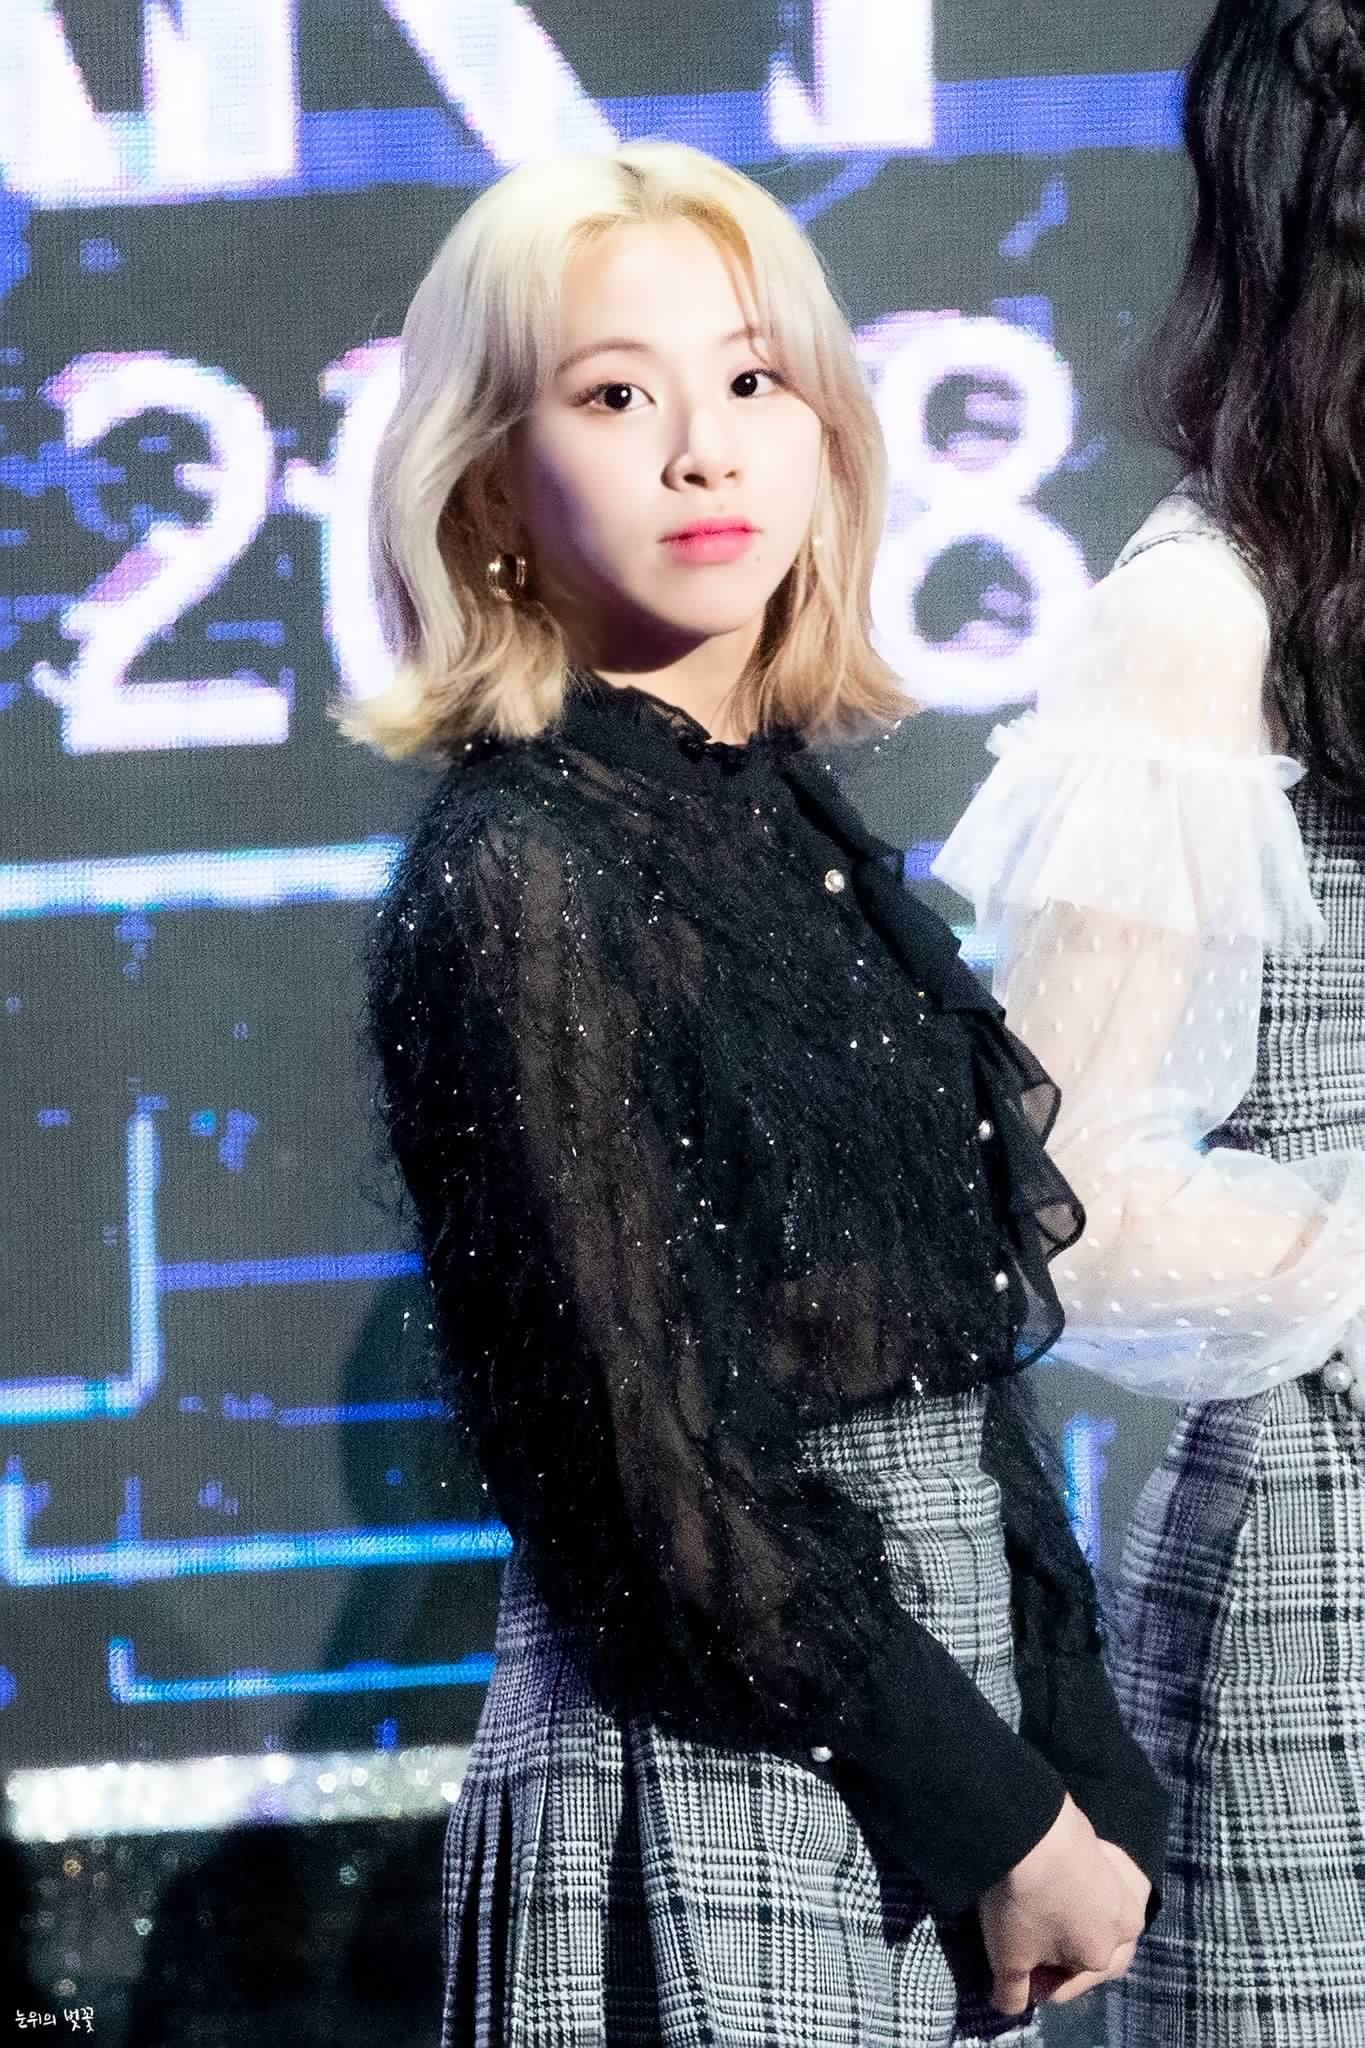 chaeyoung stage 50